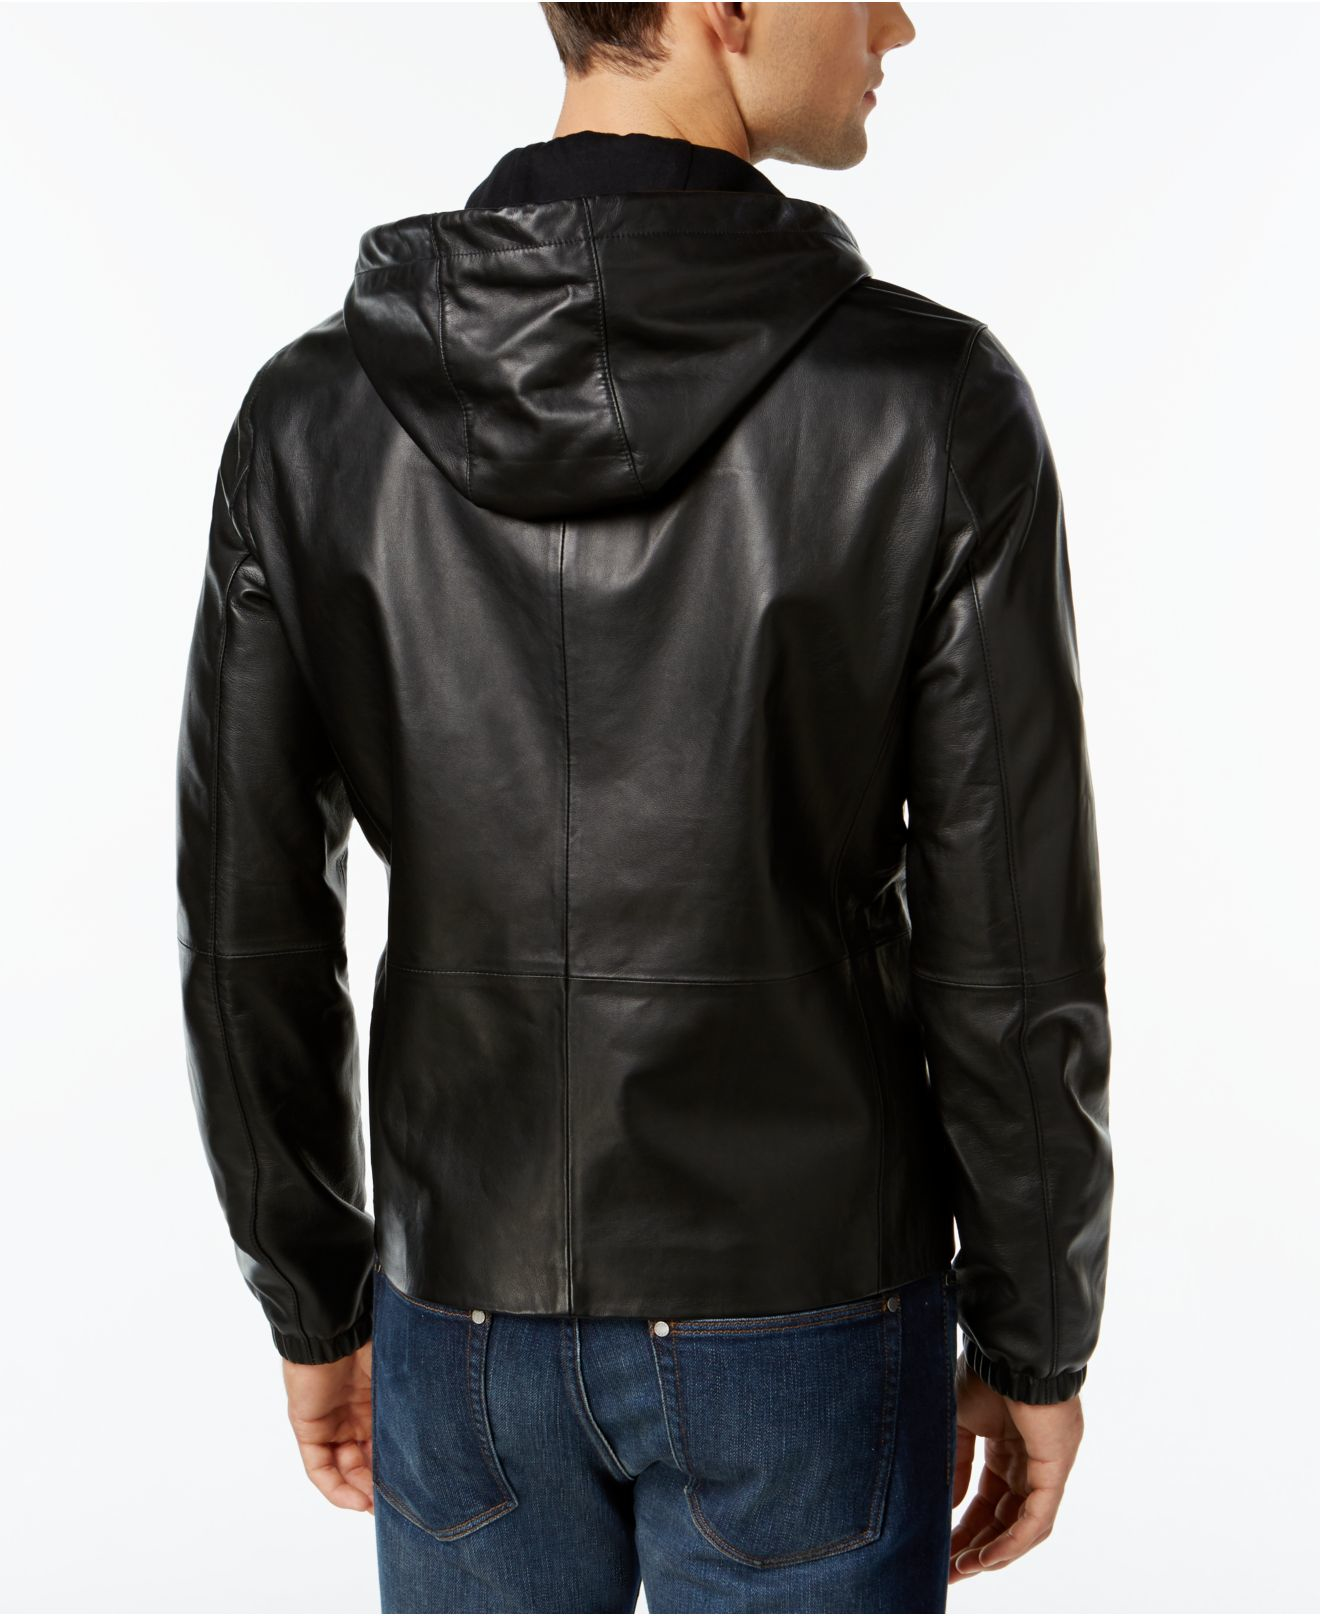 Leather Hoodie: Perfect for Rainy and Wet Days